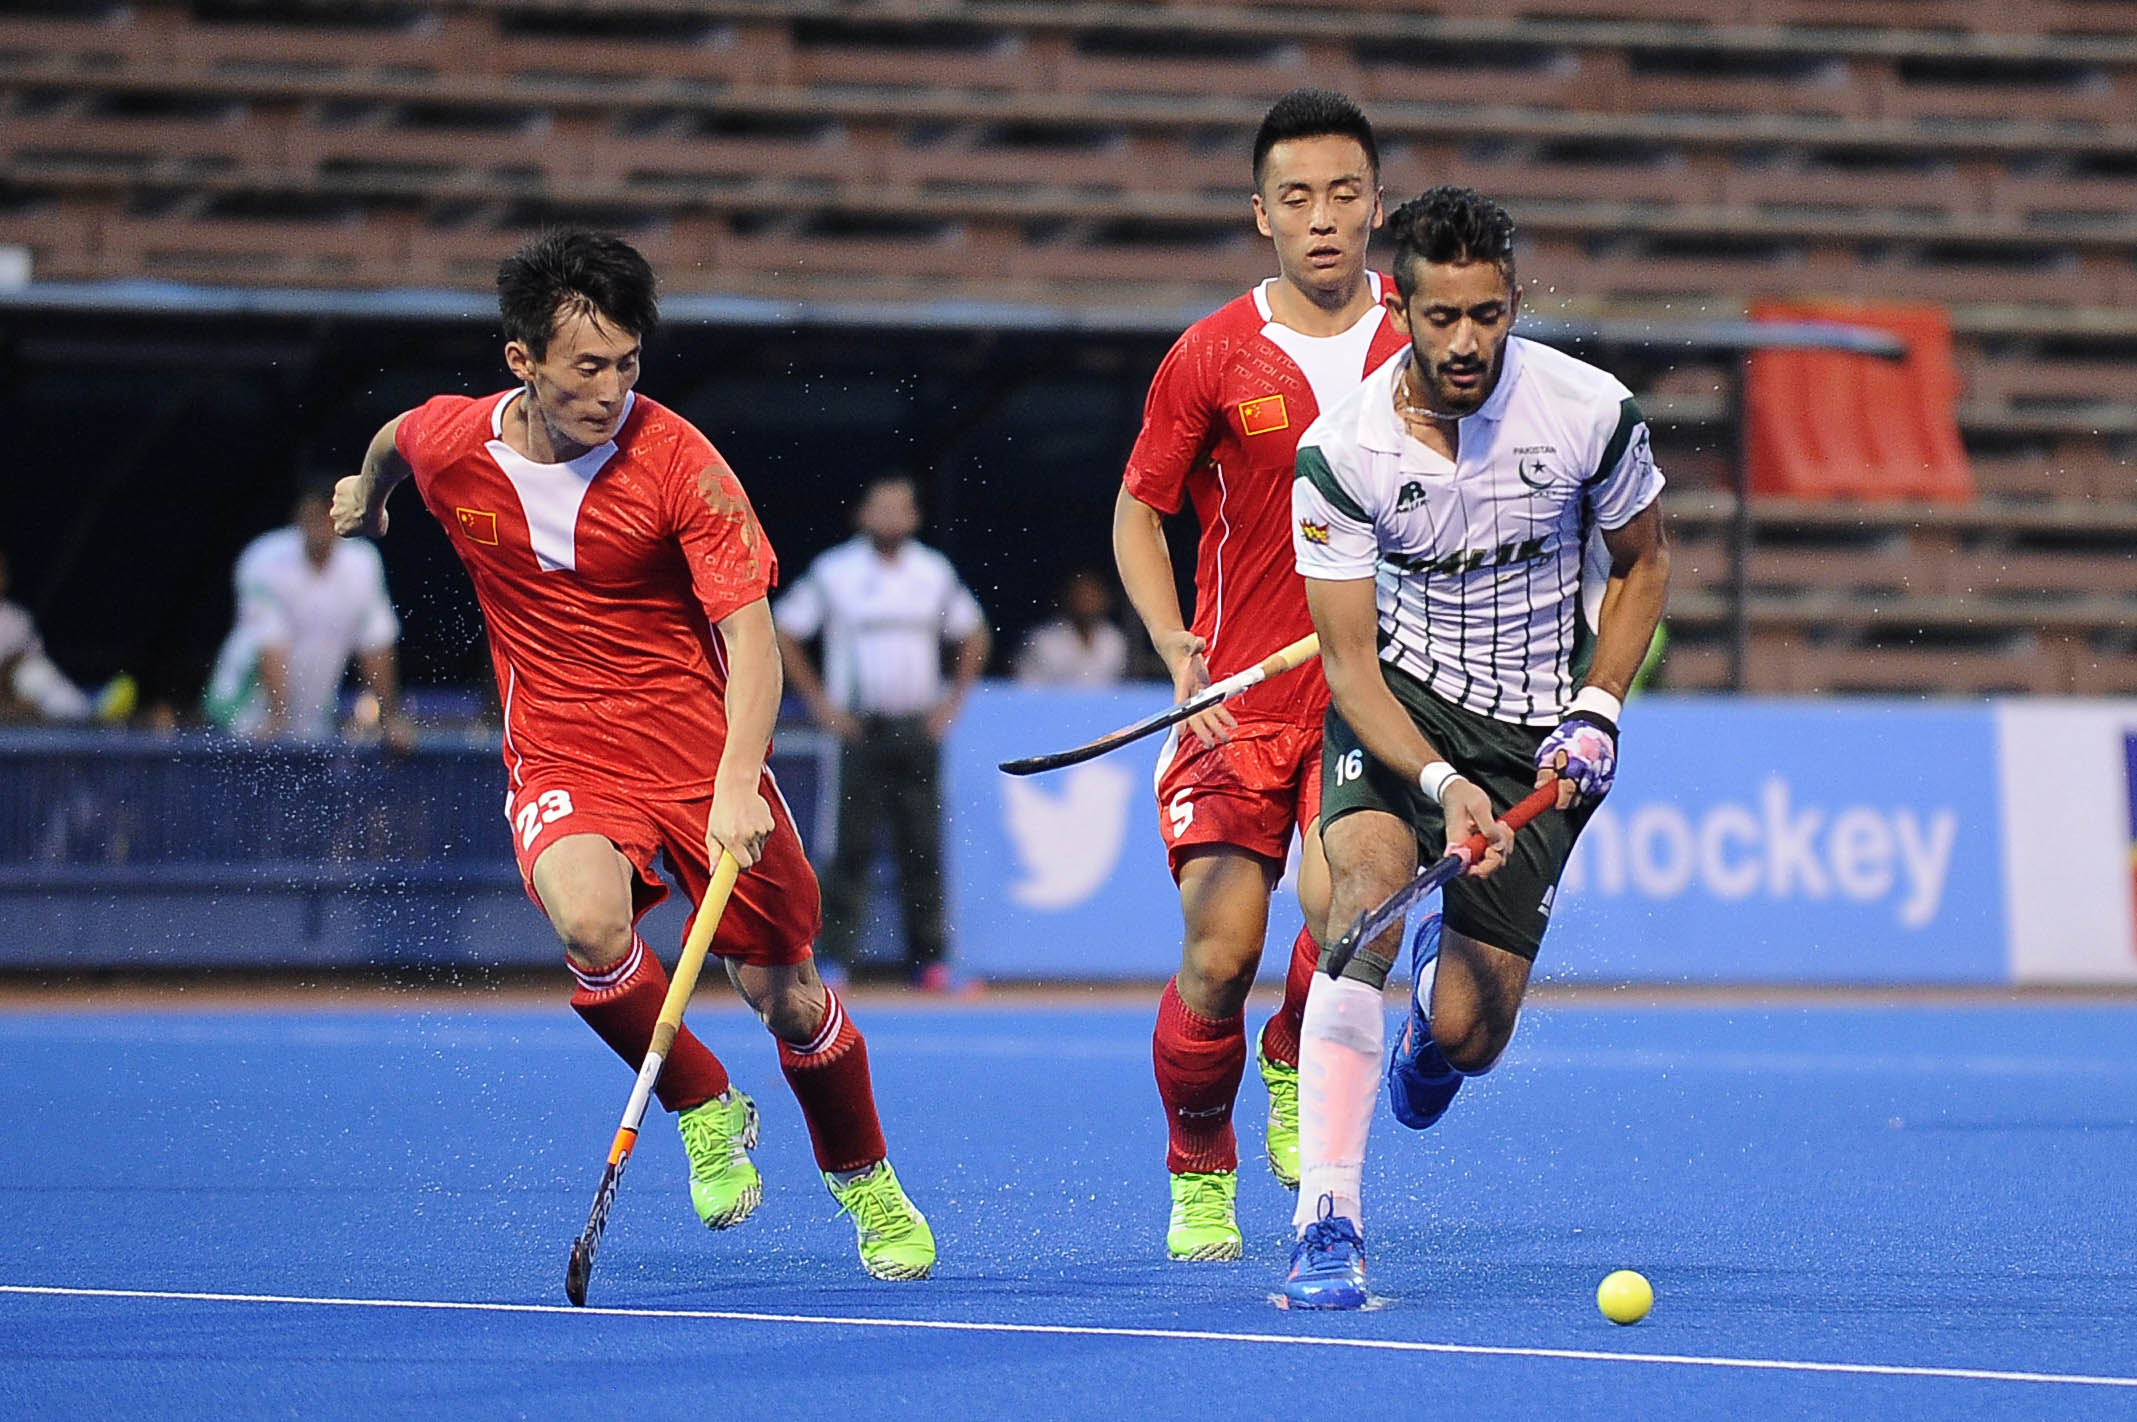 Pakistan's Ammad Shakeel Butt (left) dribbles the ball away from two Chinese players during their QNET 4th Men's Asian Champions Trophy 2016 match at the Wisma Belia Hockey Stadium, Kuantan today. Pakistan won 4-0.